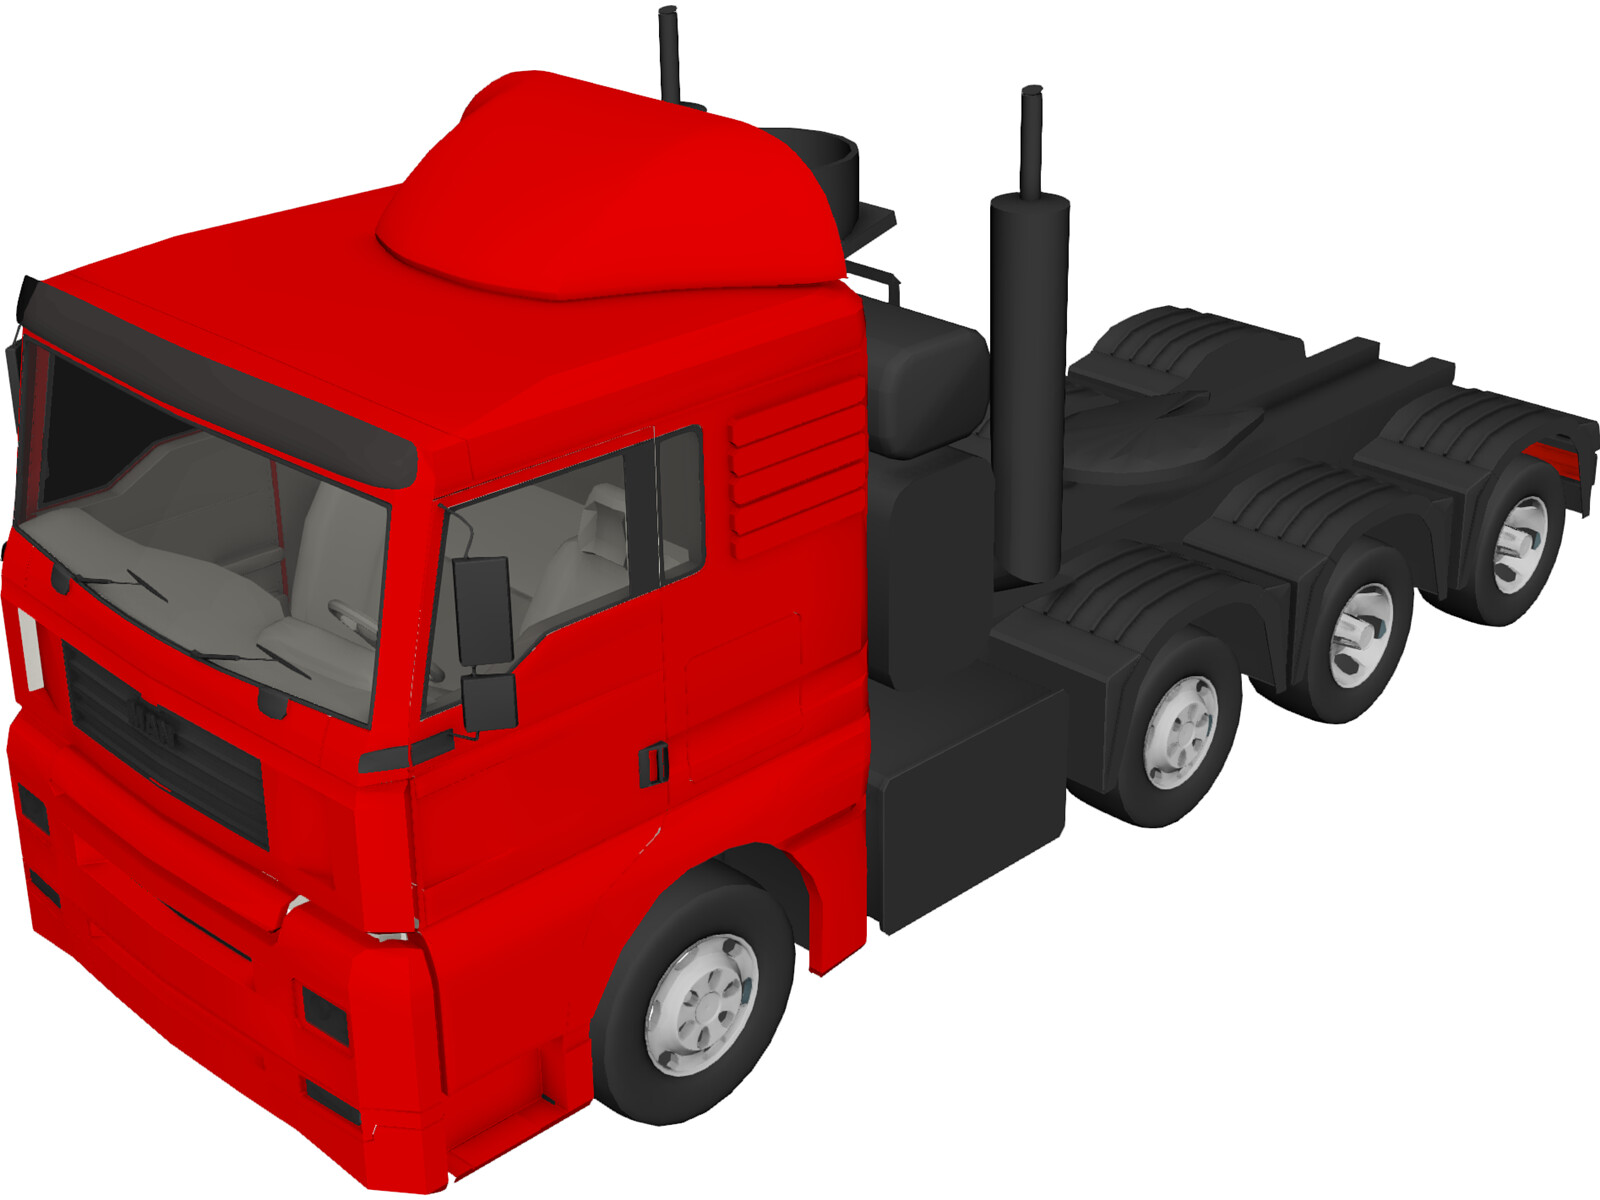 MAN Truck 3D Model - 3D CAD Browser